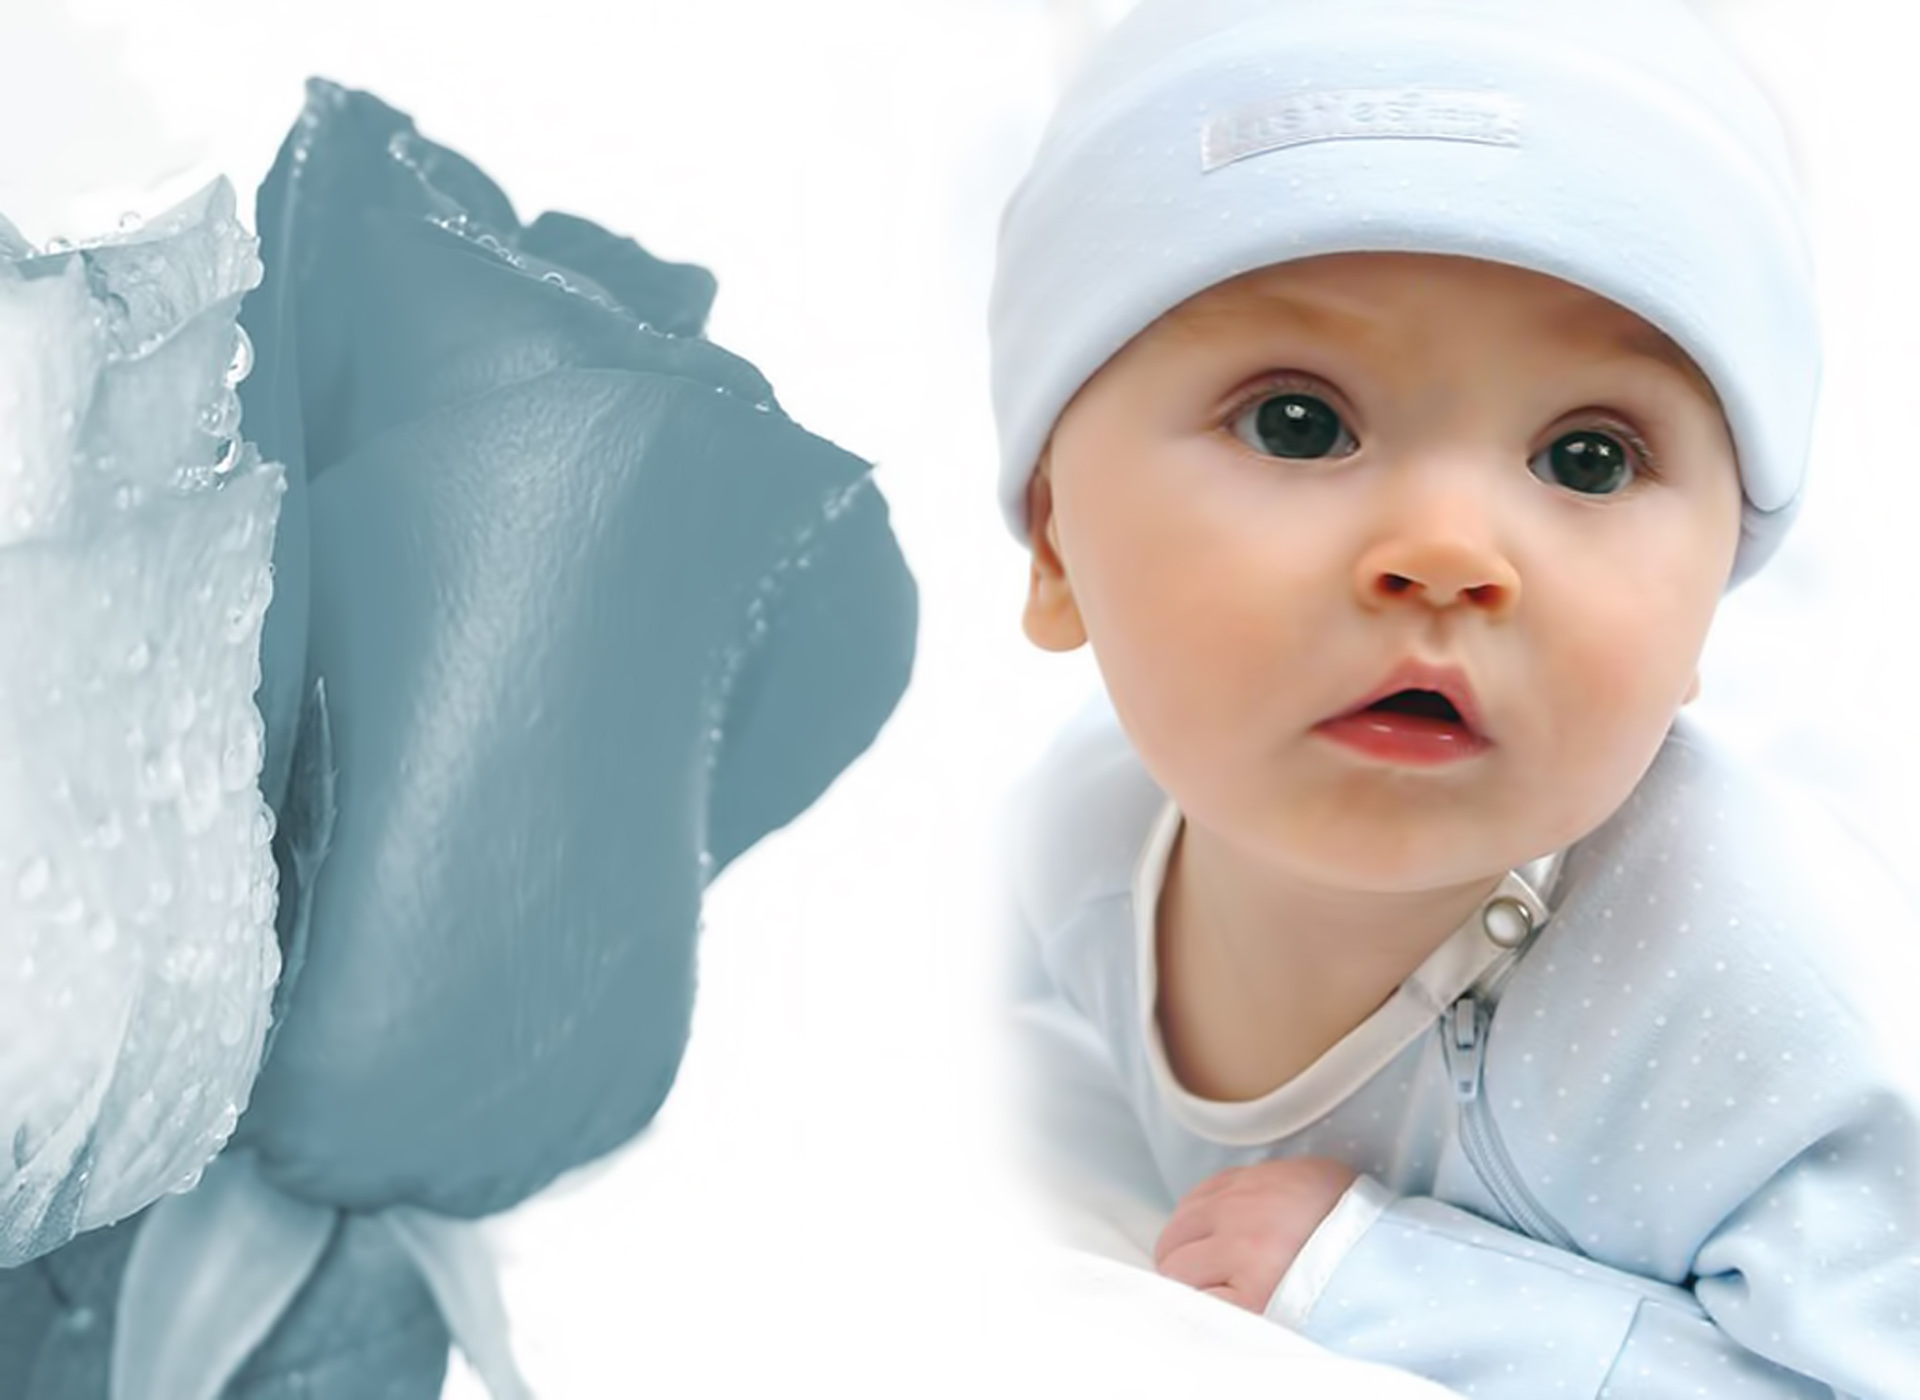 Cute Baby Boy HD Widescreen HD wallpapers | HDesktops.com